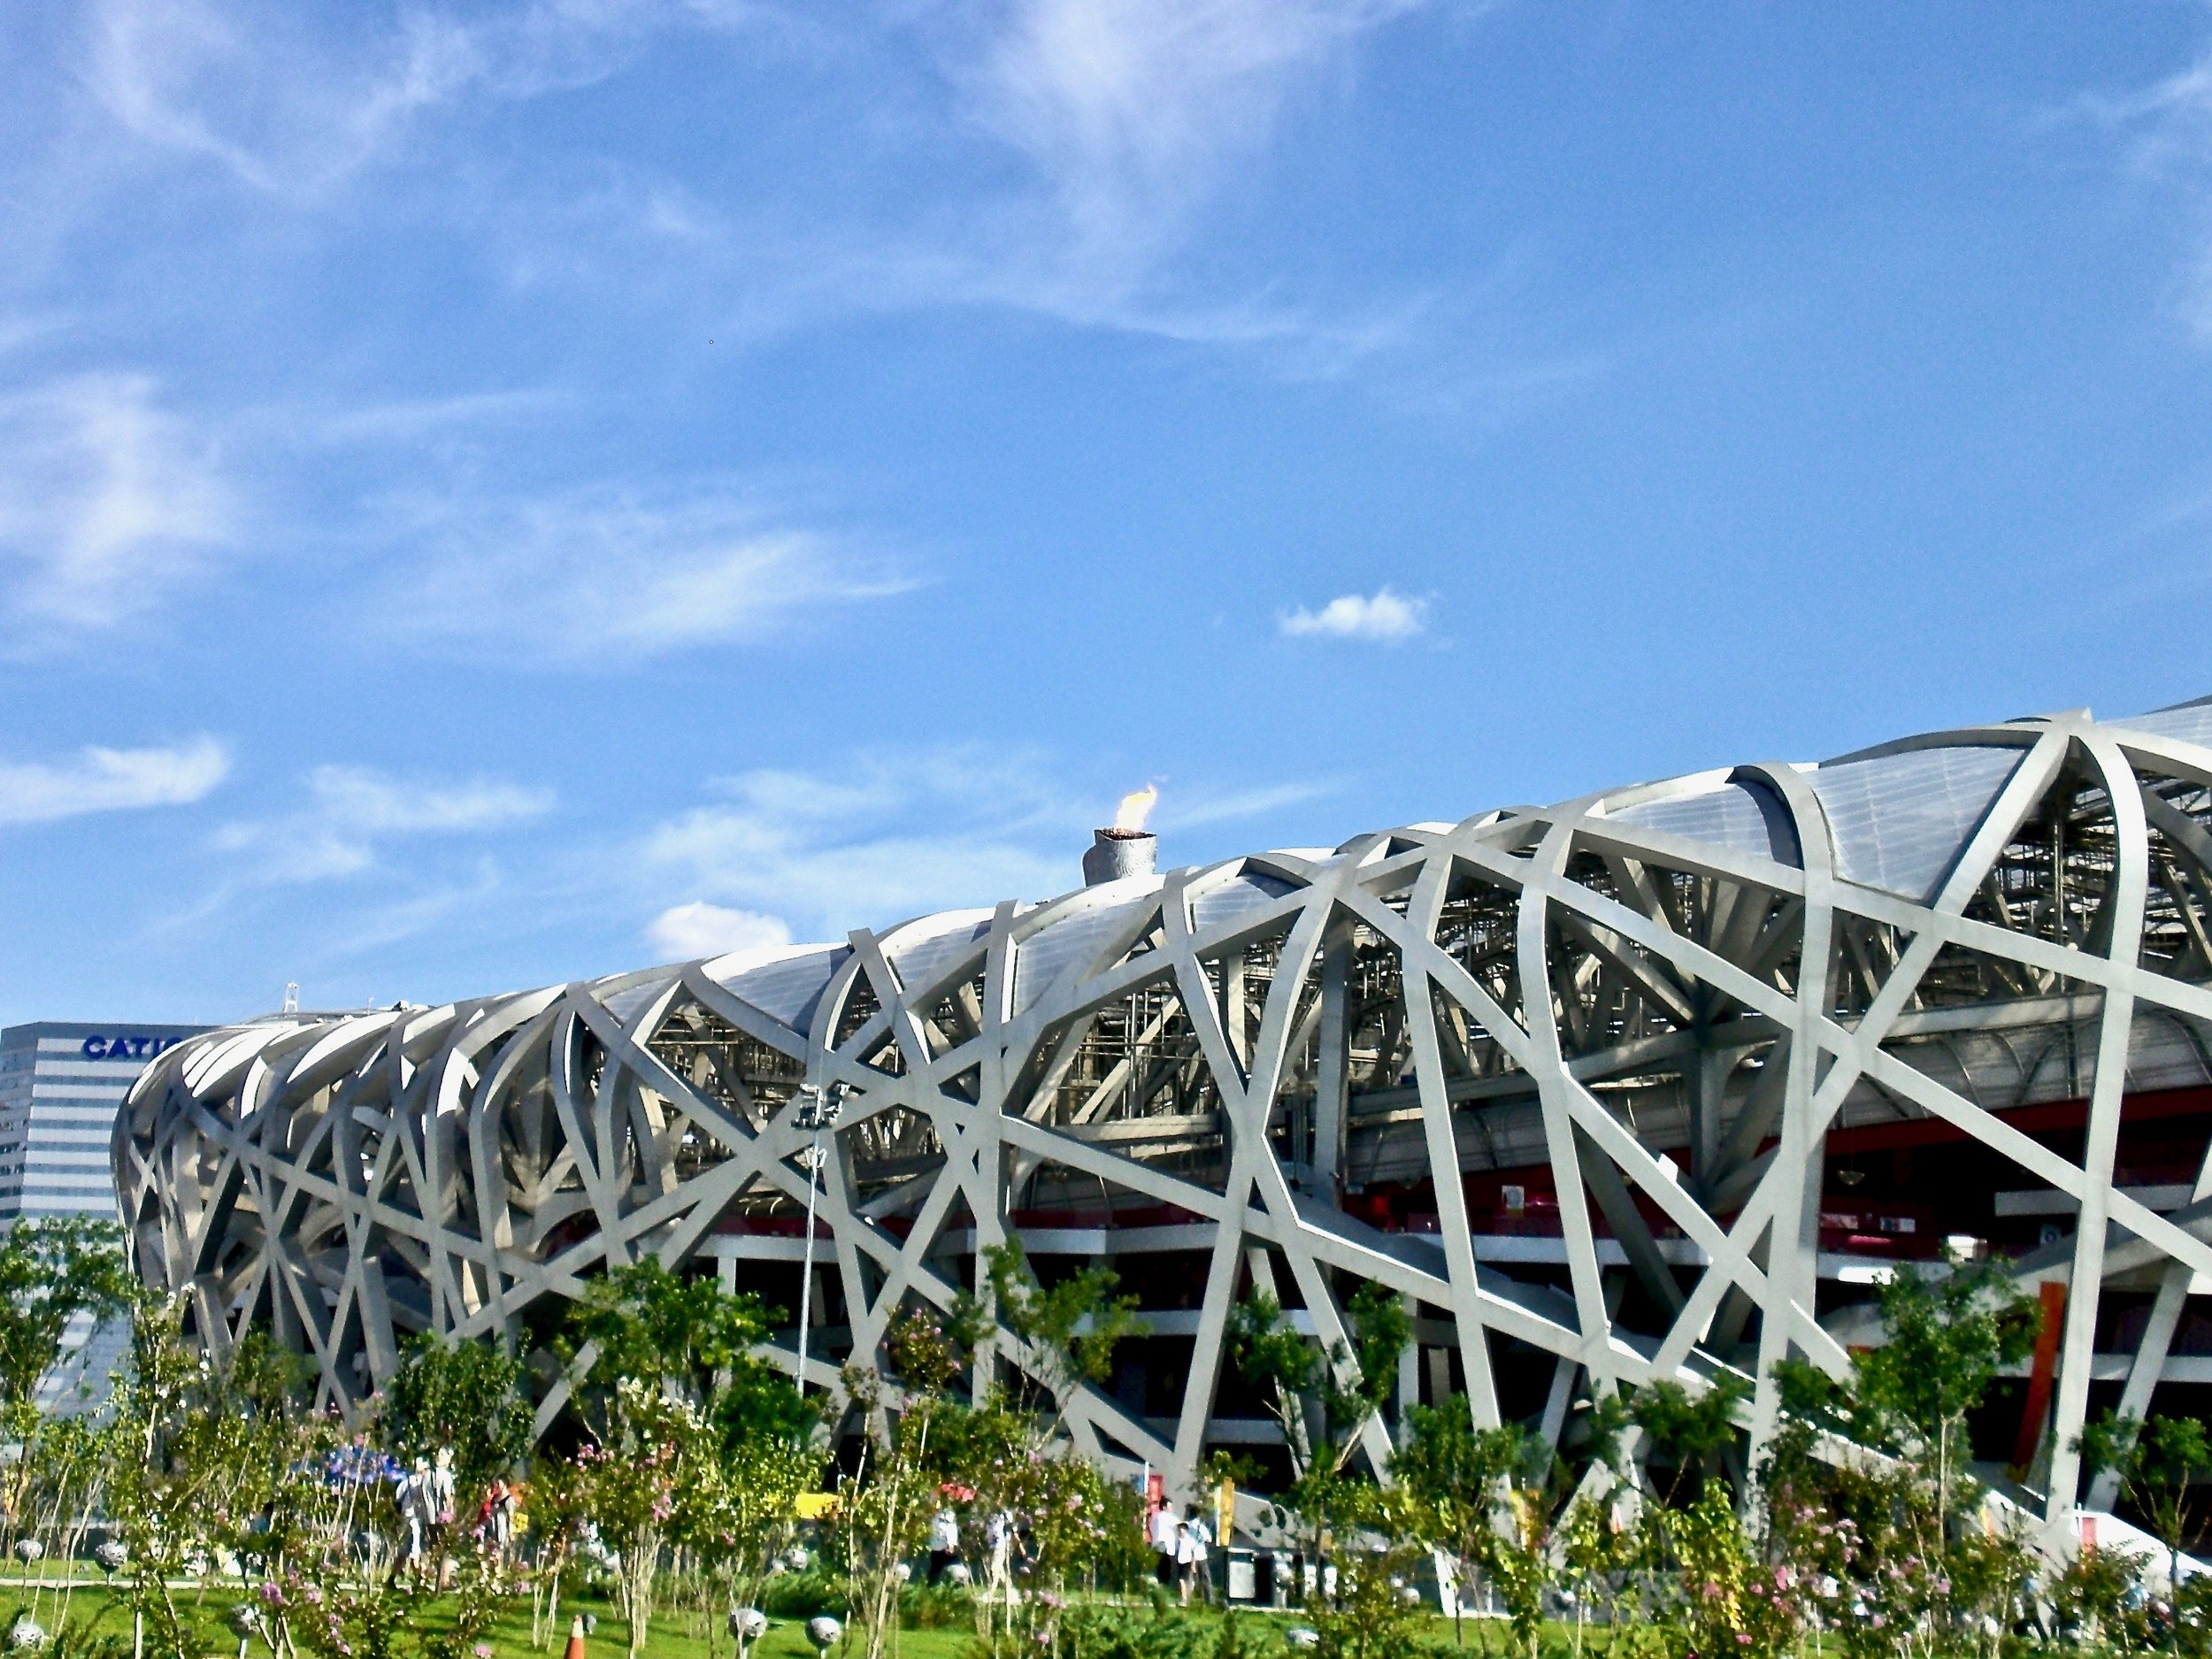 The National Stadium, designed by Ai Wei Wei, during the 2008 Olympic Games in Beijing, China. (C) Remko Tanis